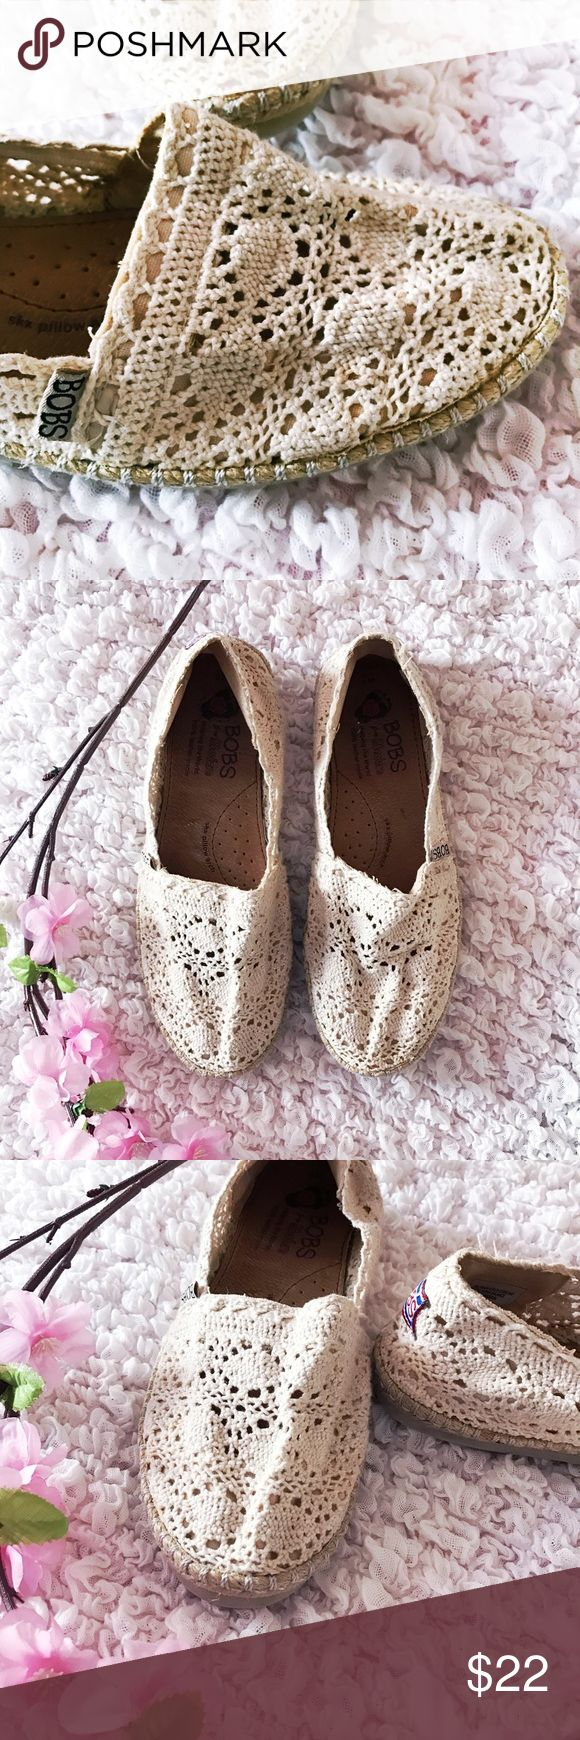 BOBS crochet flats☀️ Spring is in the air & so should these BOBS crochet flats!☀️bottom sole wear some mild insole wear! Pair with high waisted shorts & crochet crop top✔️(as seen in photos ~not for sale) Offers welcomeno trades thank you Skechers Shoes Flats & Loafers